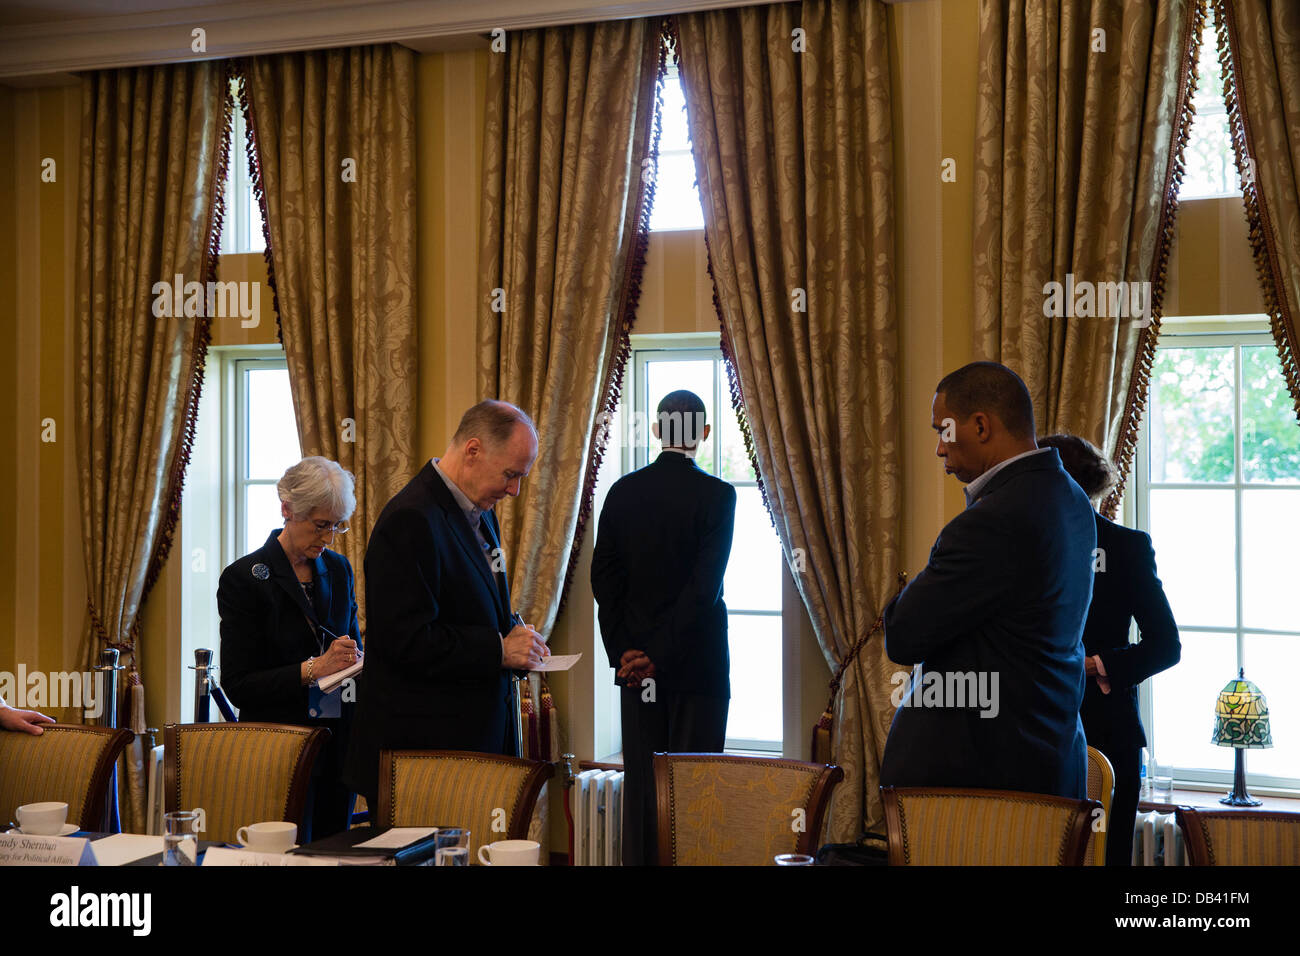 President Barack Obama waits with advisors before a bilateral meeting during the G8 Summit at the Lough Erne Resort - Stock Image